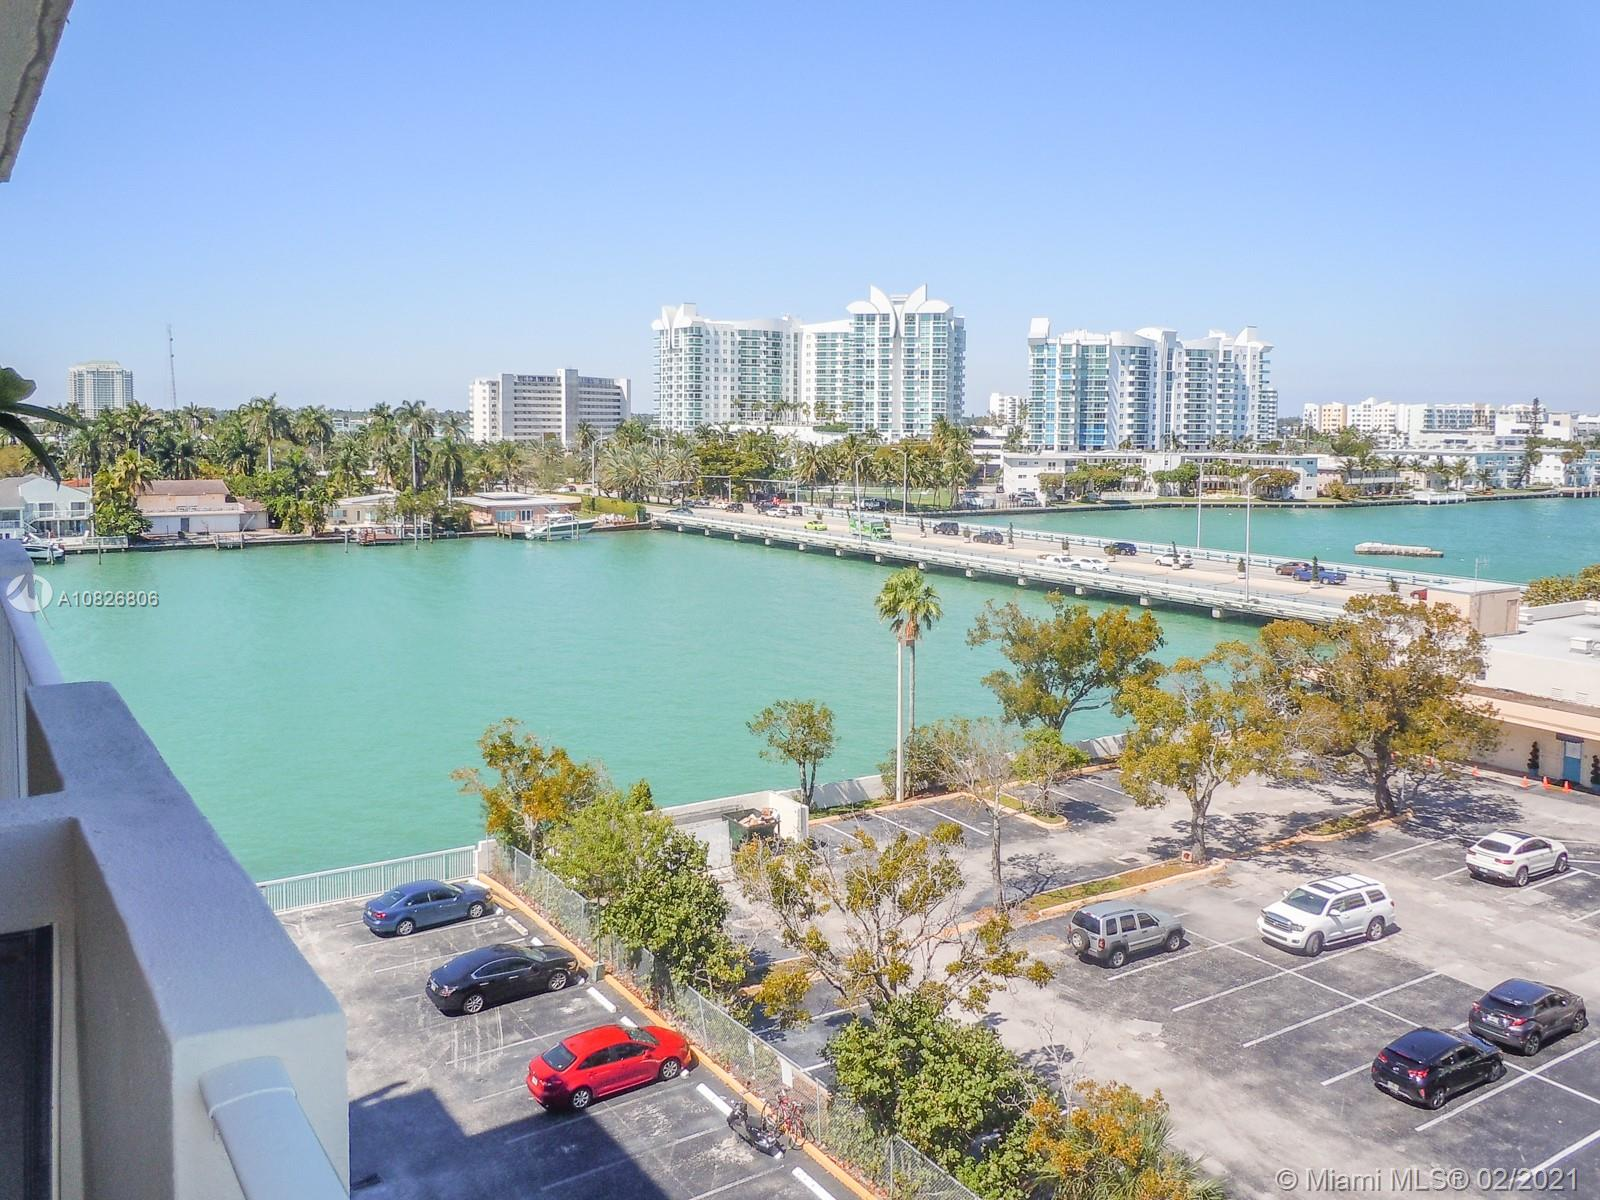 Island Place, 1455 N Treasure Dr Unit 7 D, North Bay Village, Florida 33141, image 21